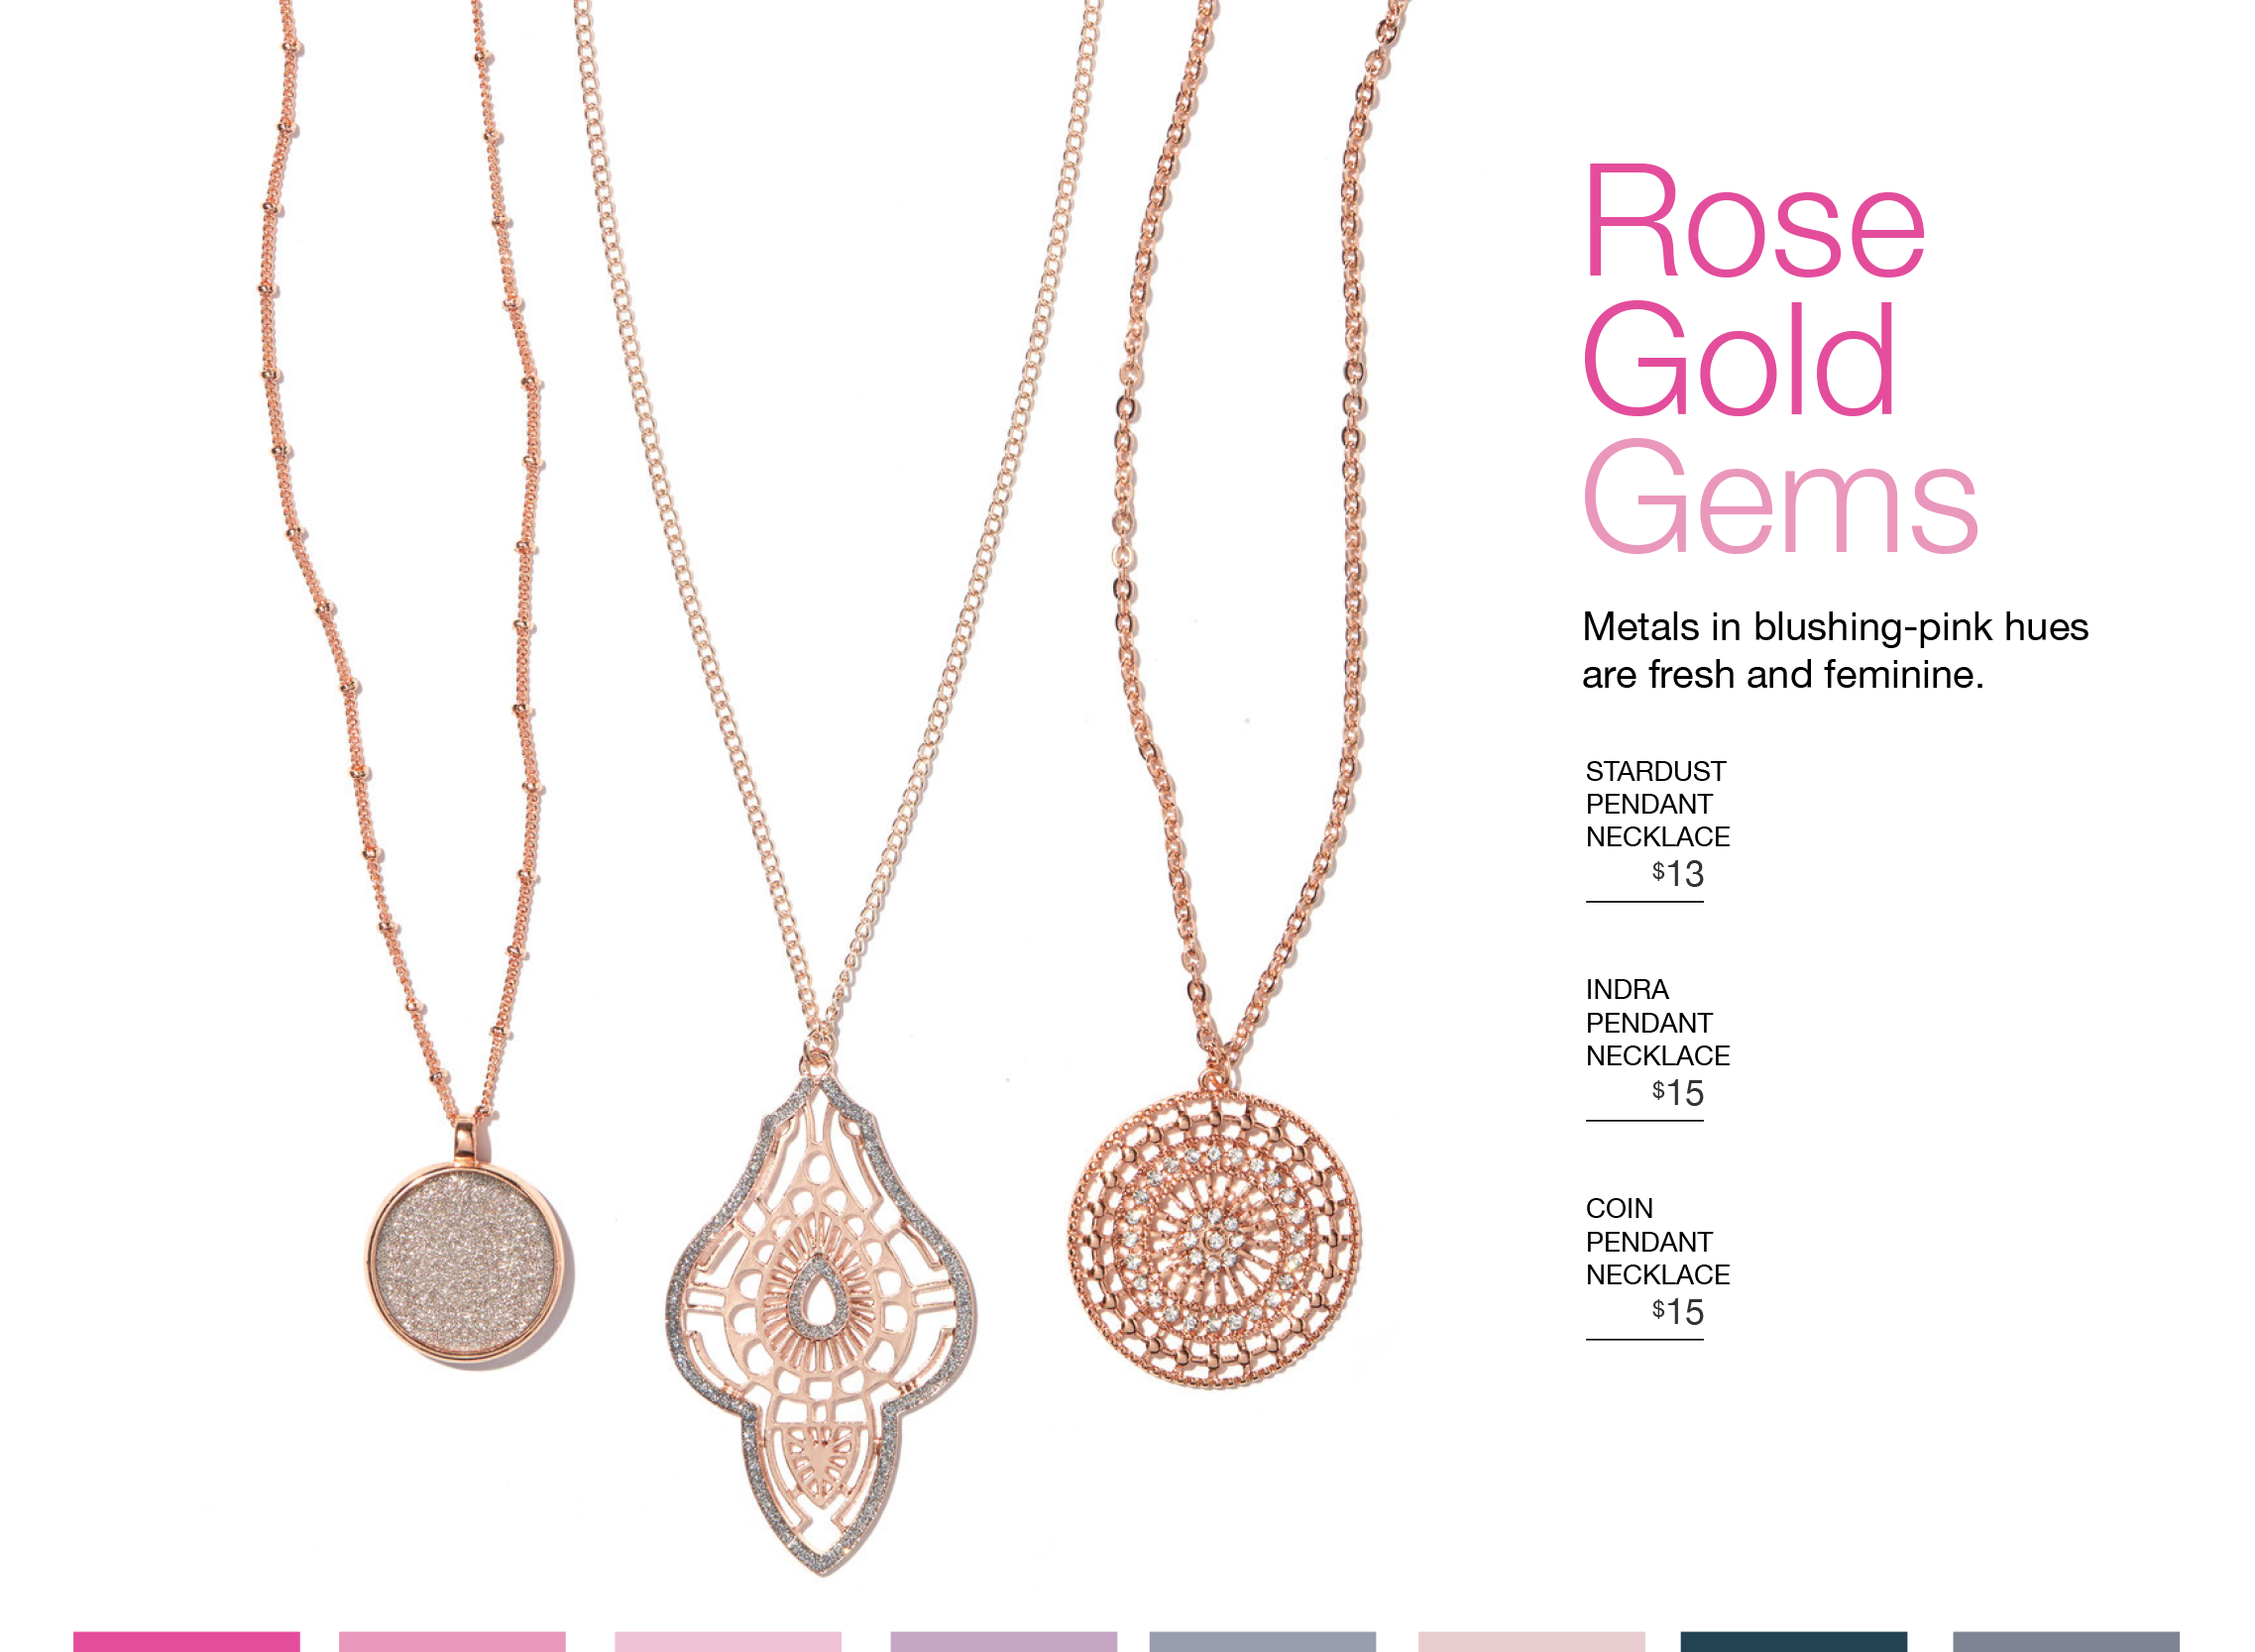 Rose Gold Gems. Metals in blushing-pink hues are fresh and feminine.